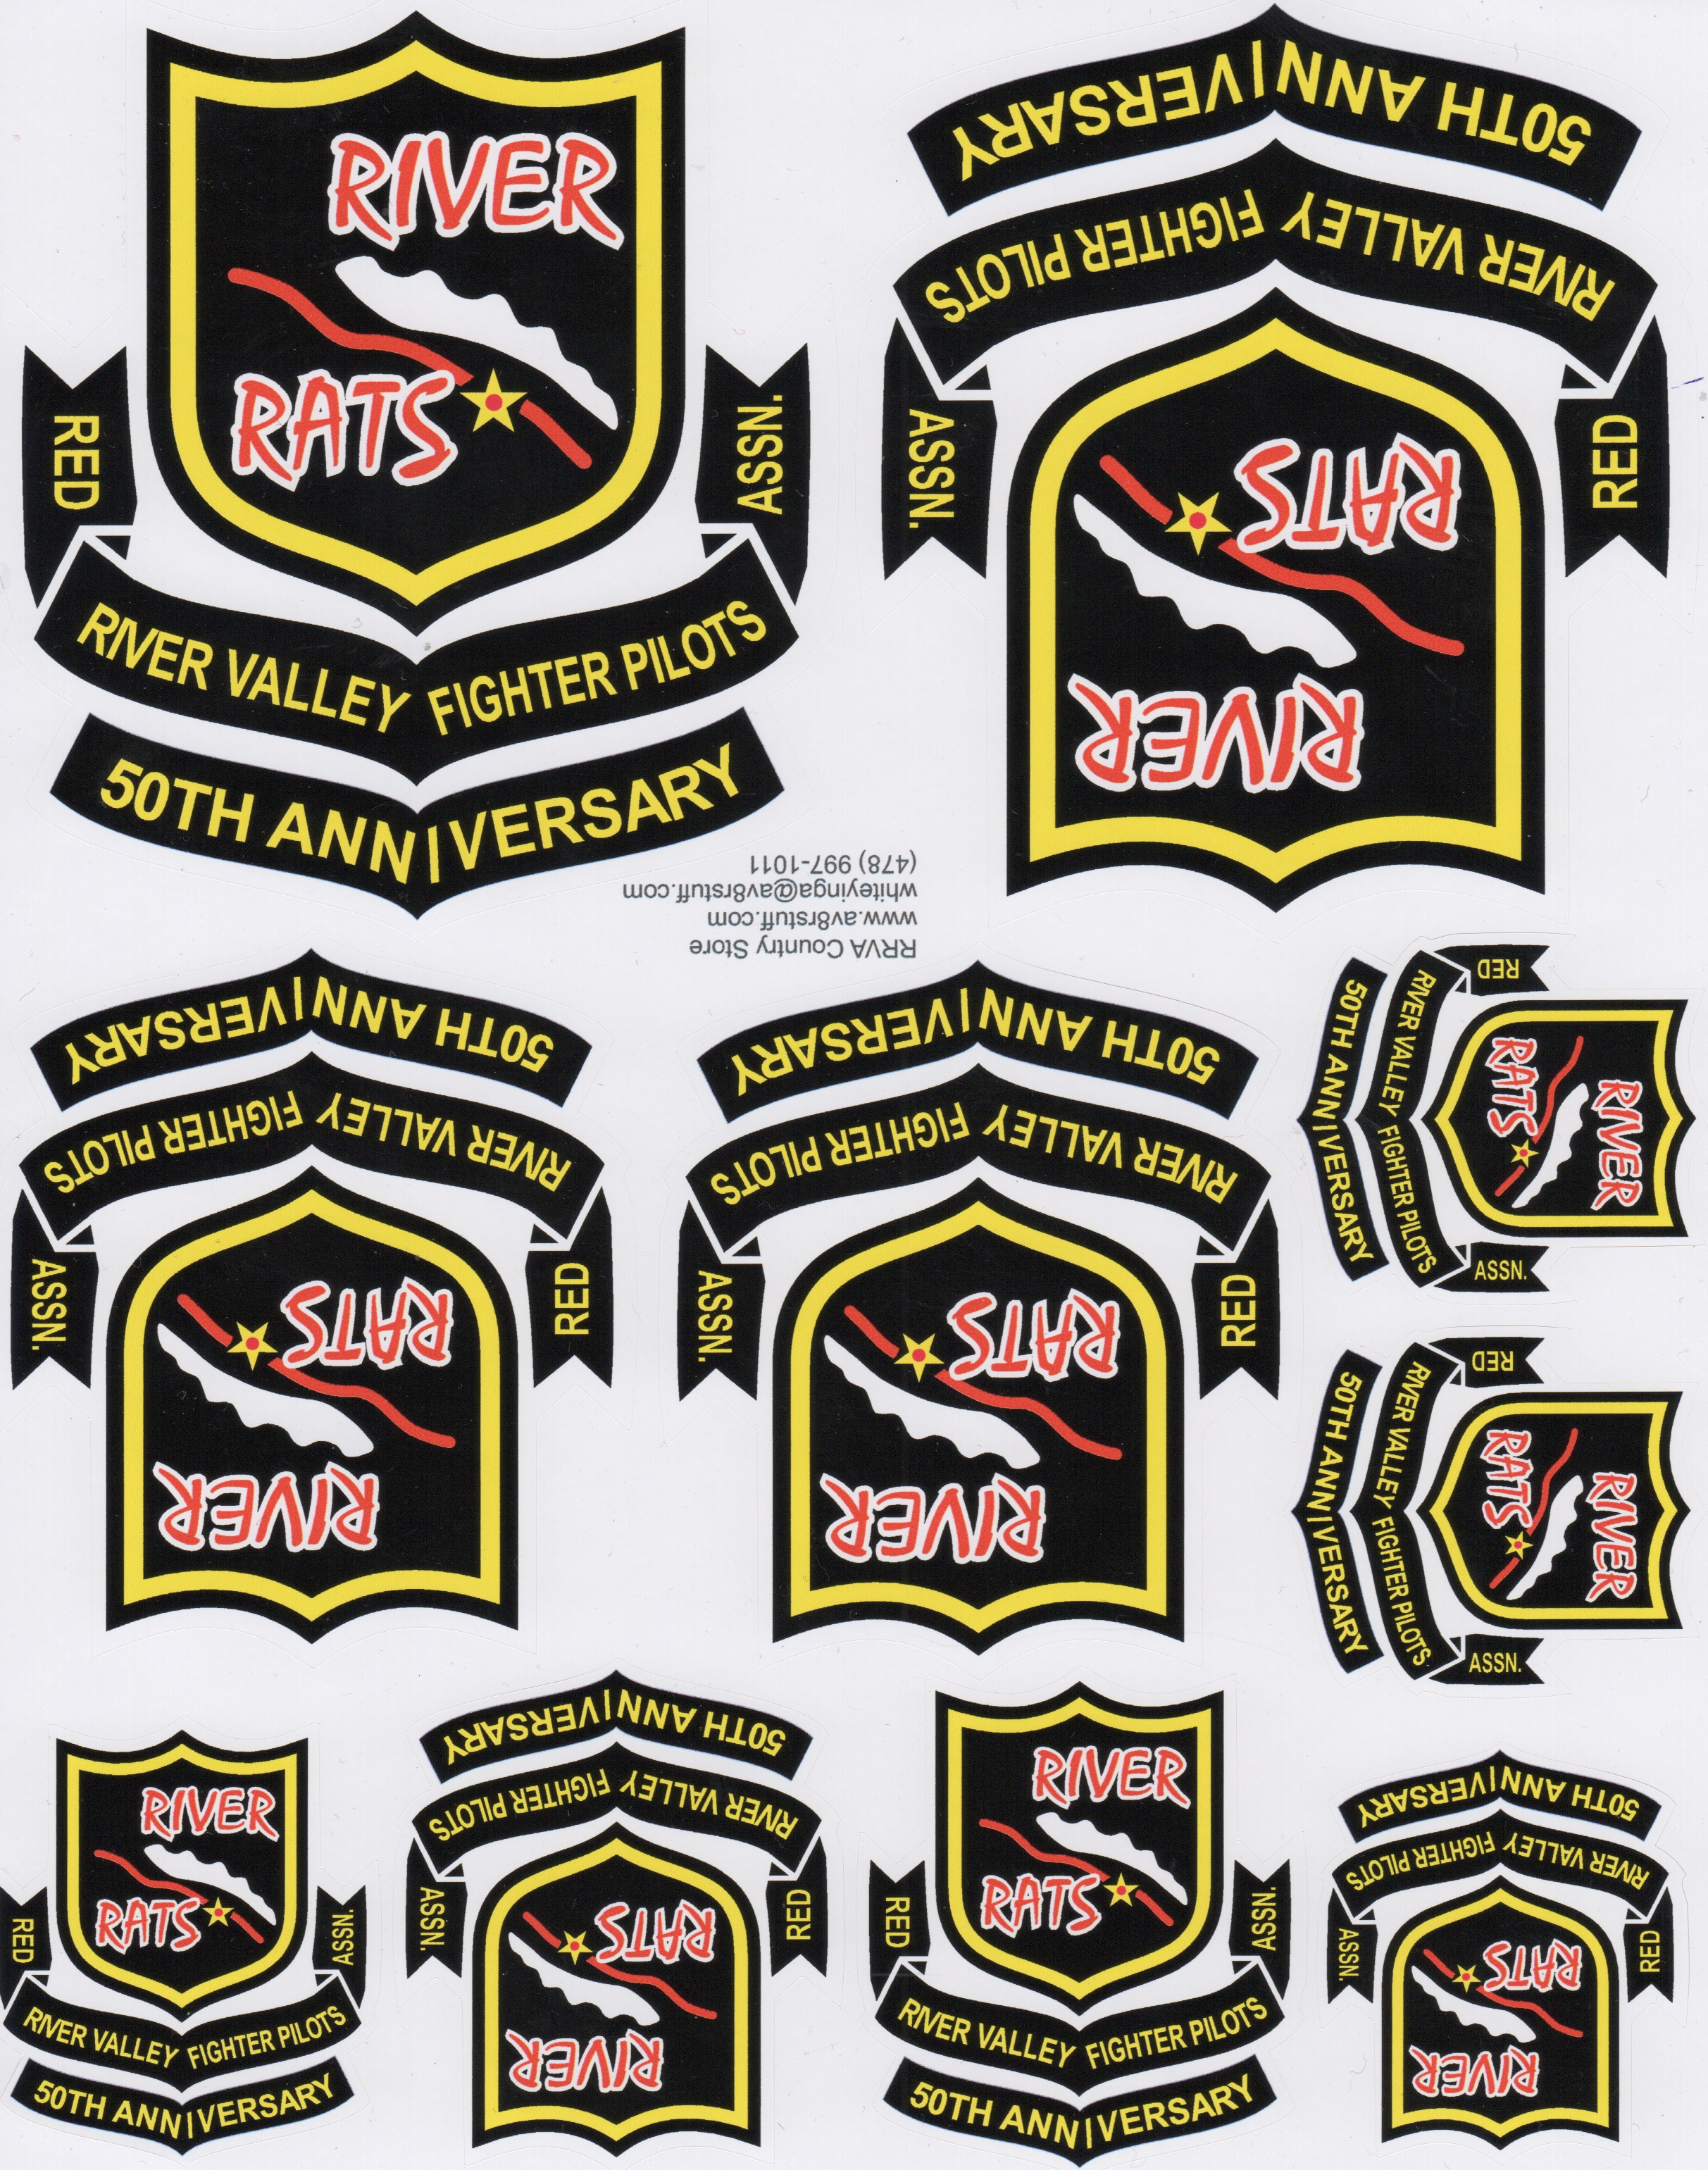 RRVA 50th Anniv 'Sheet of 10 Zaps'